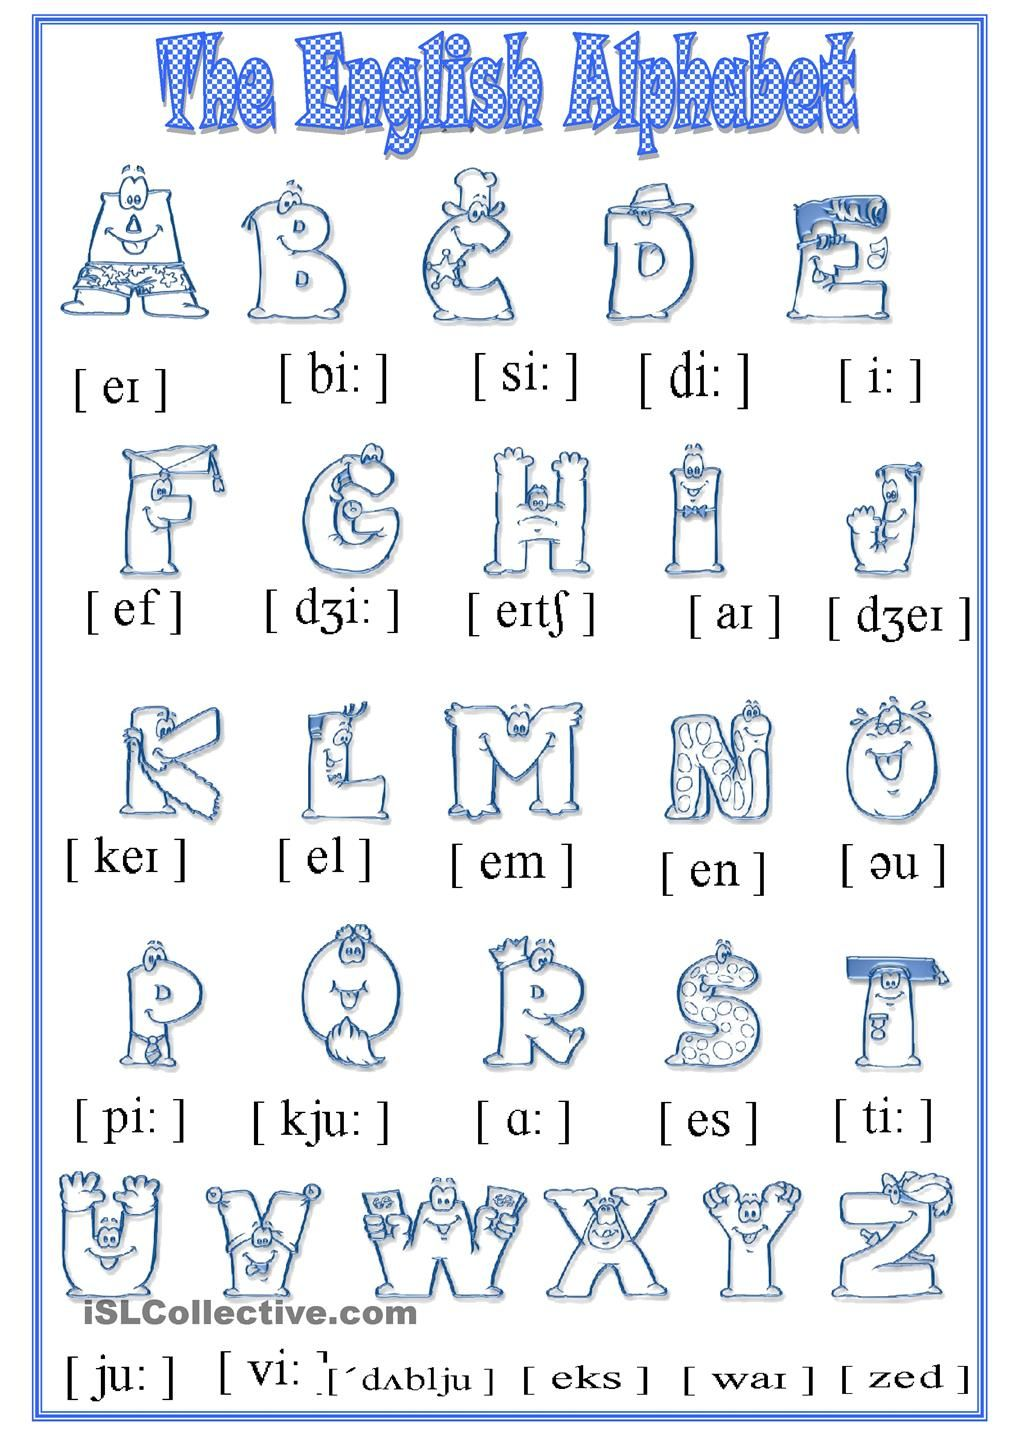 Alphabet  School b do b do  Pinterest  Student-centered  grade worksheets, math worksheets, education, multiplication, alphabet worksheets, and learning Phonetic Alphabet Worksheet 1440 x 1018